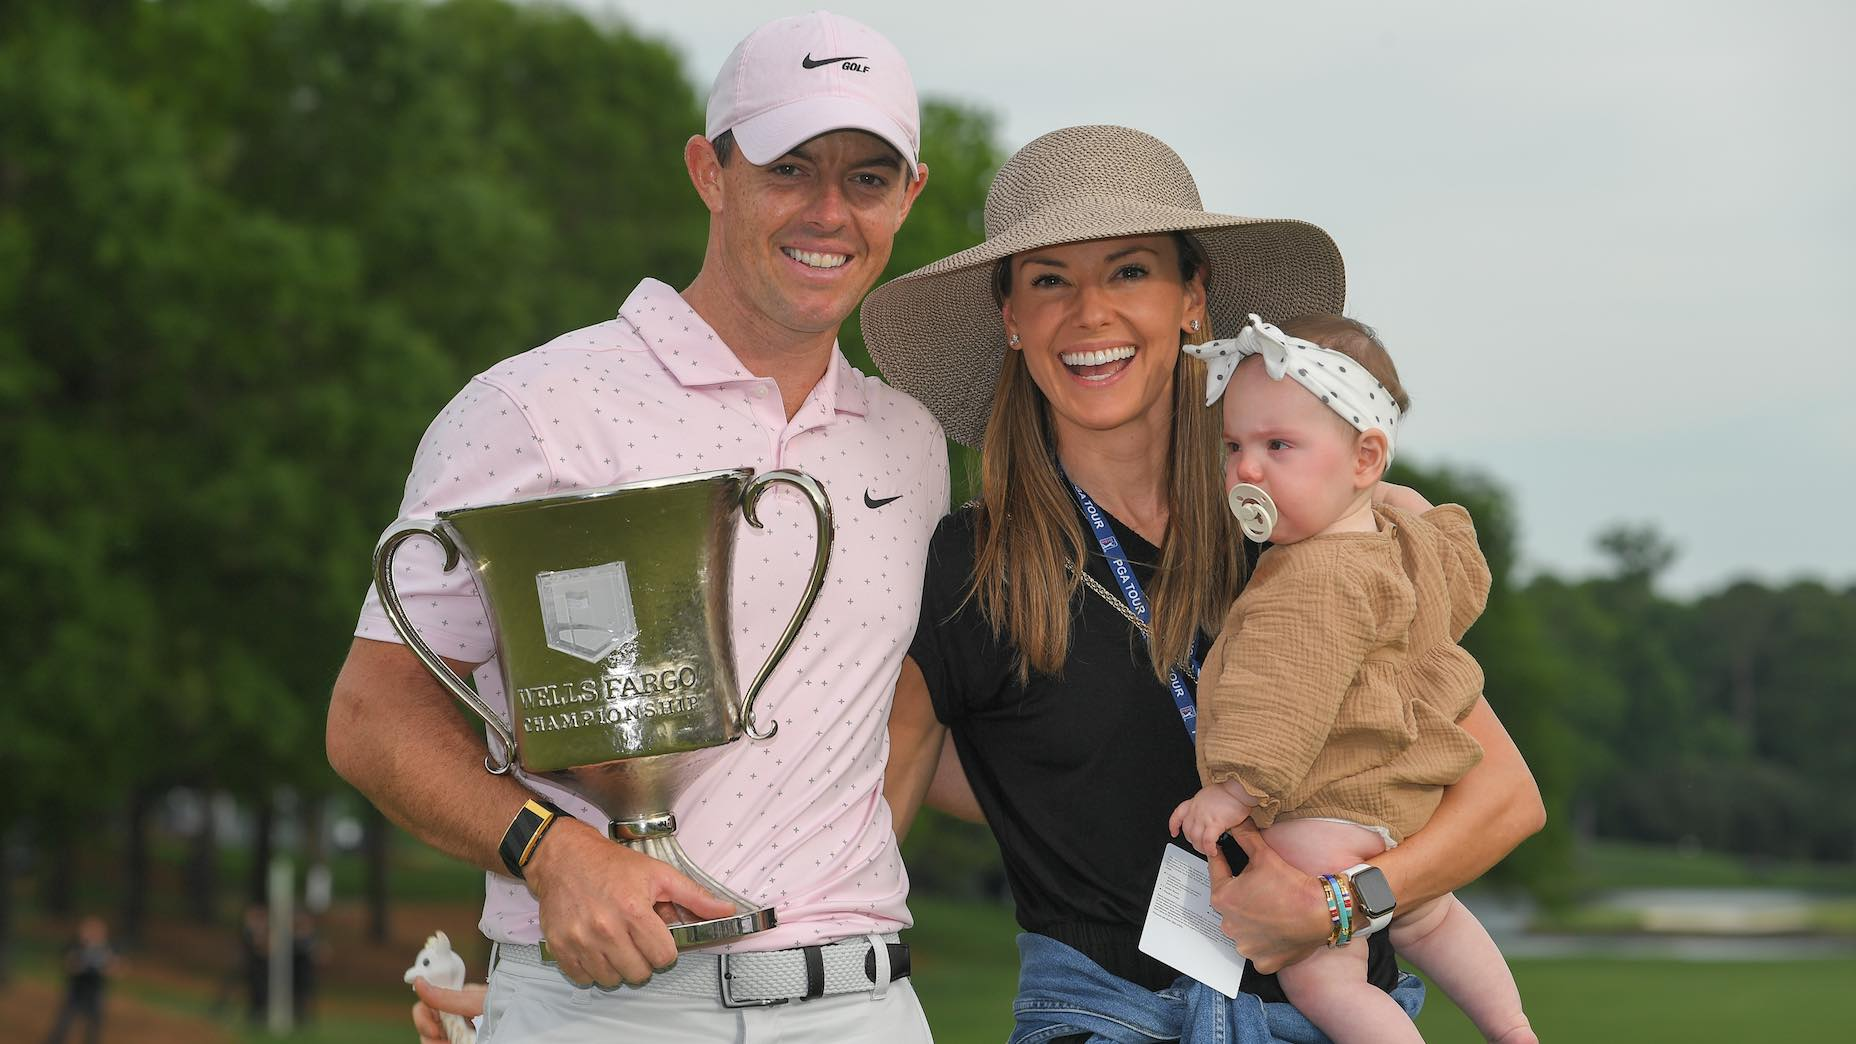 Rory McIlroy's win at the Wells Fargo was his first as a father.